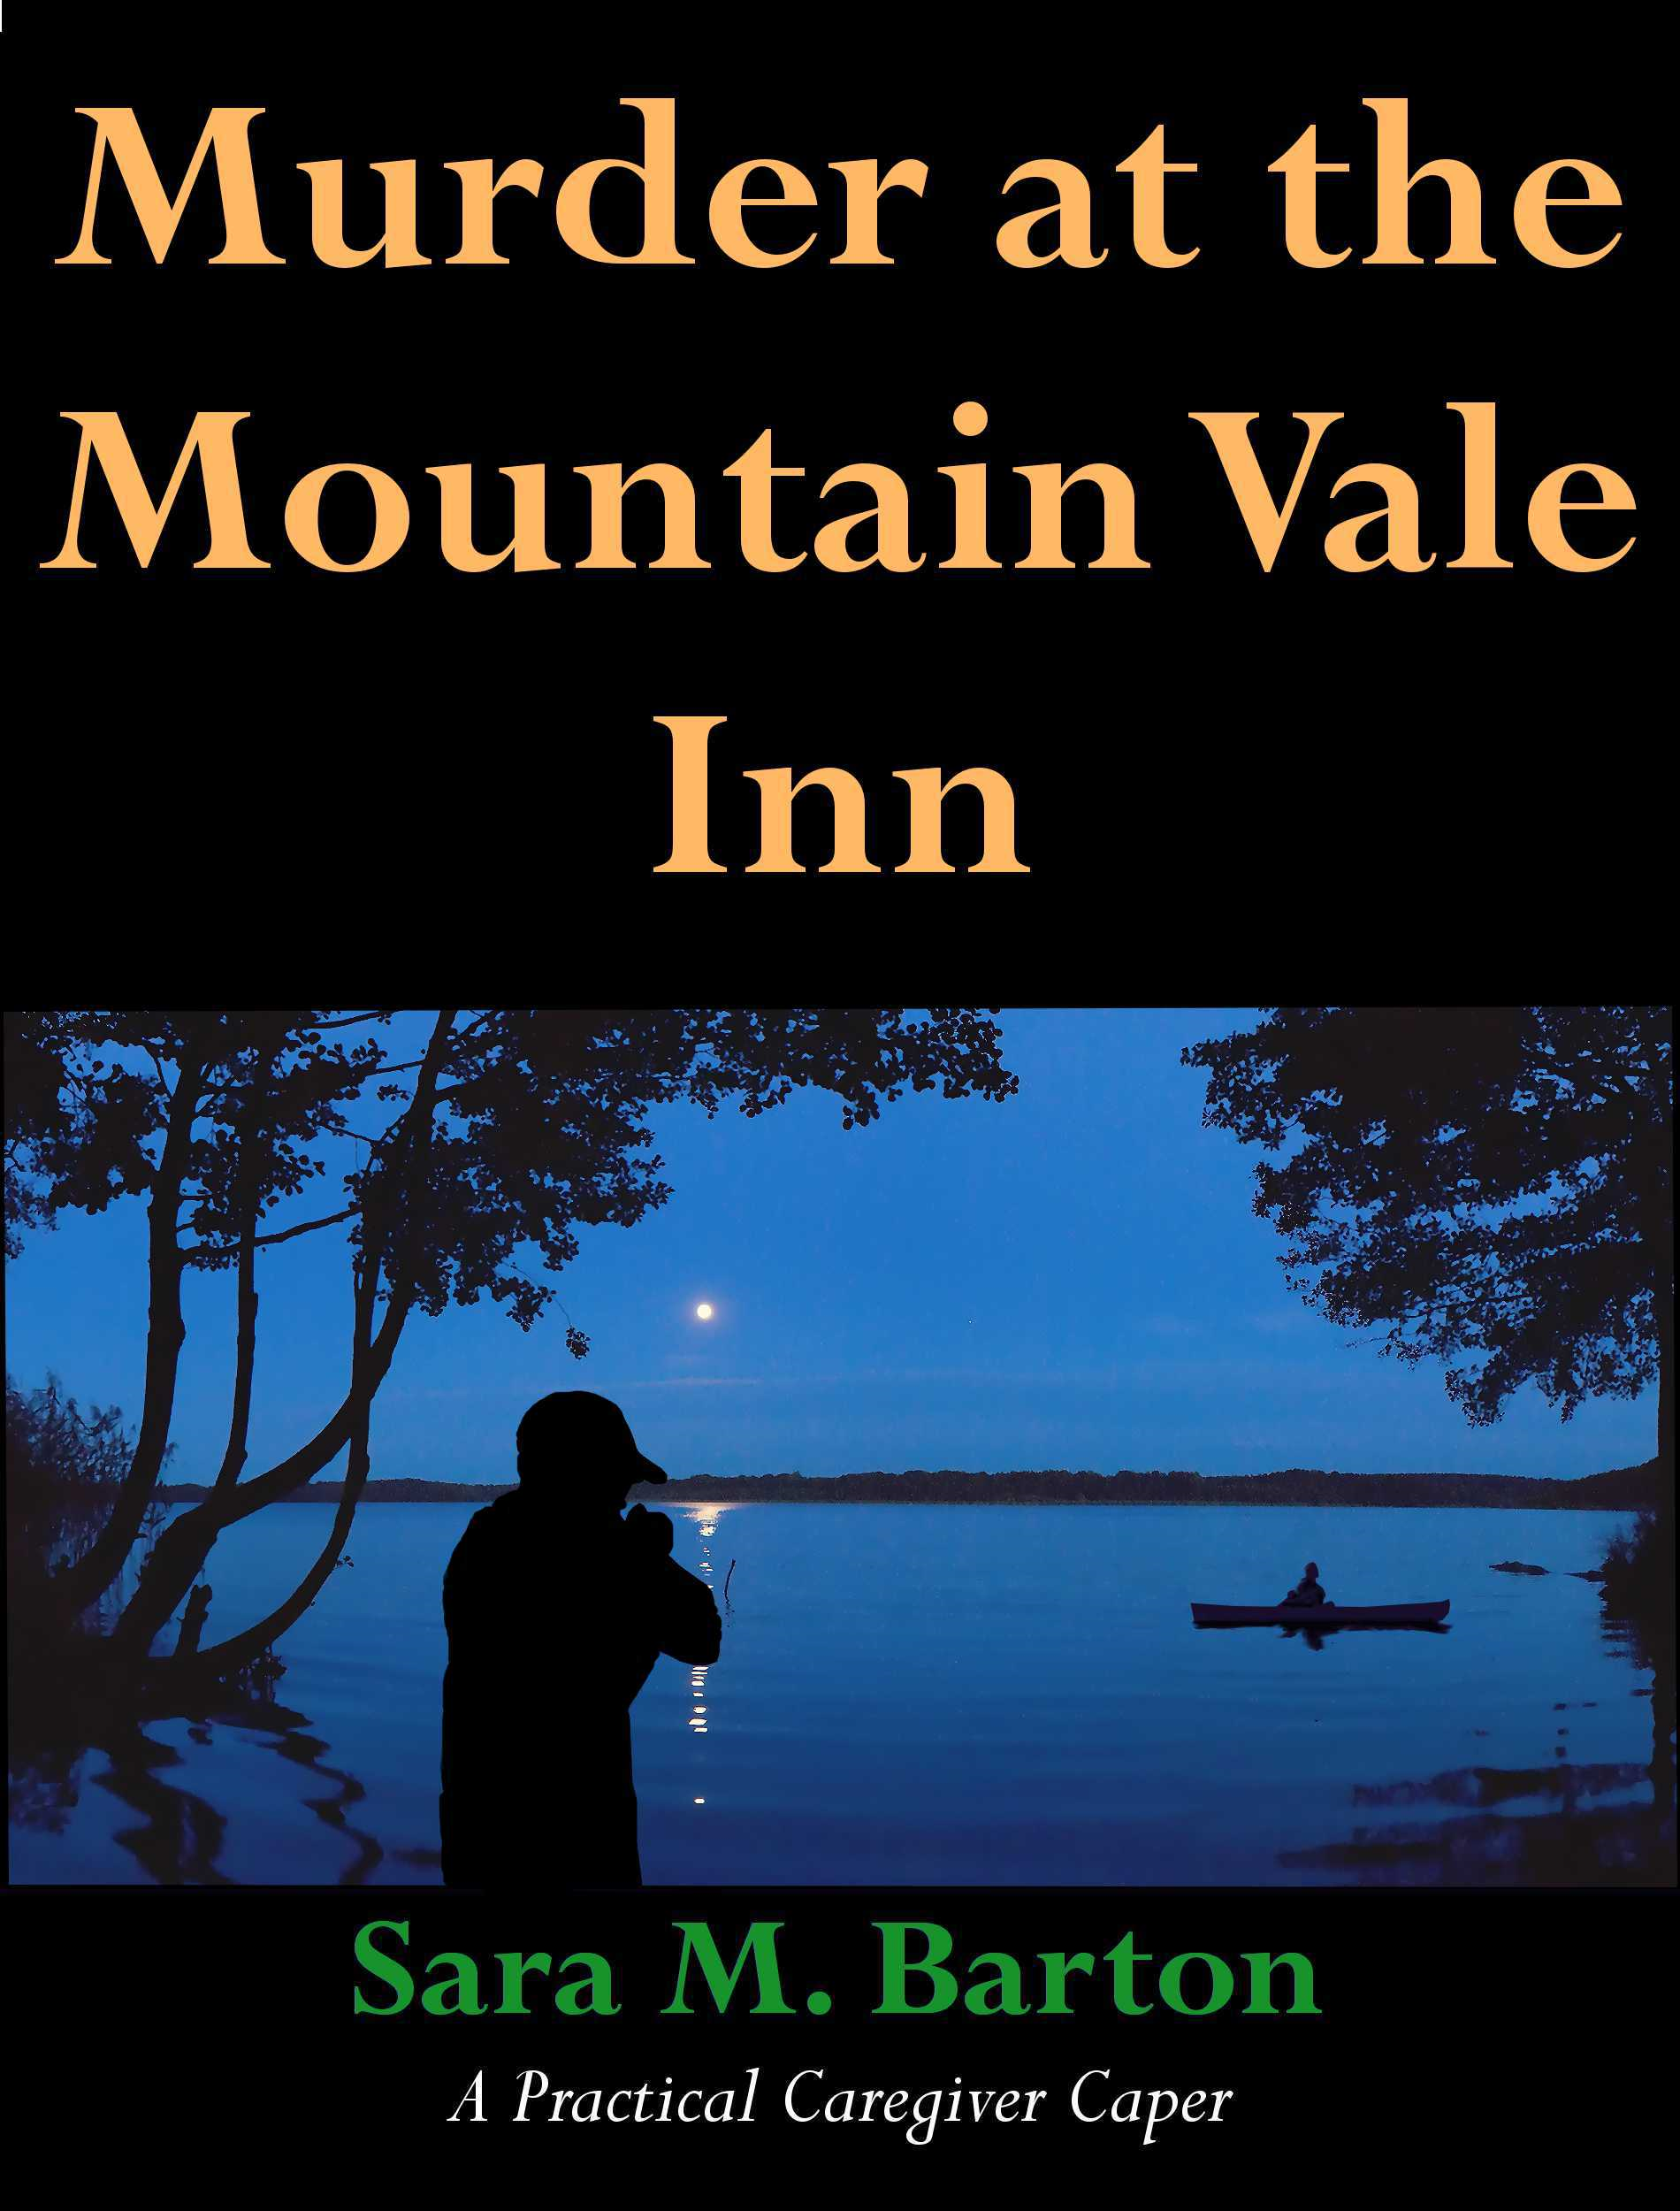 Murder at the Mountain Vale Inn